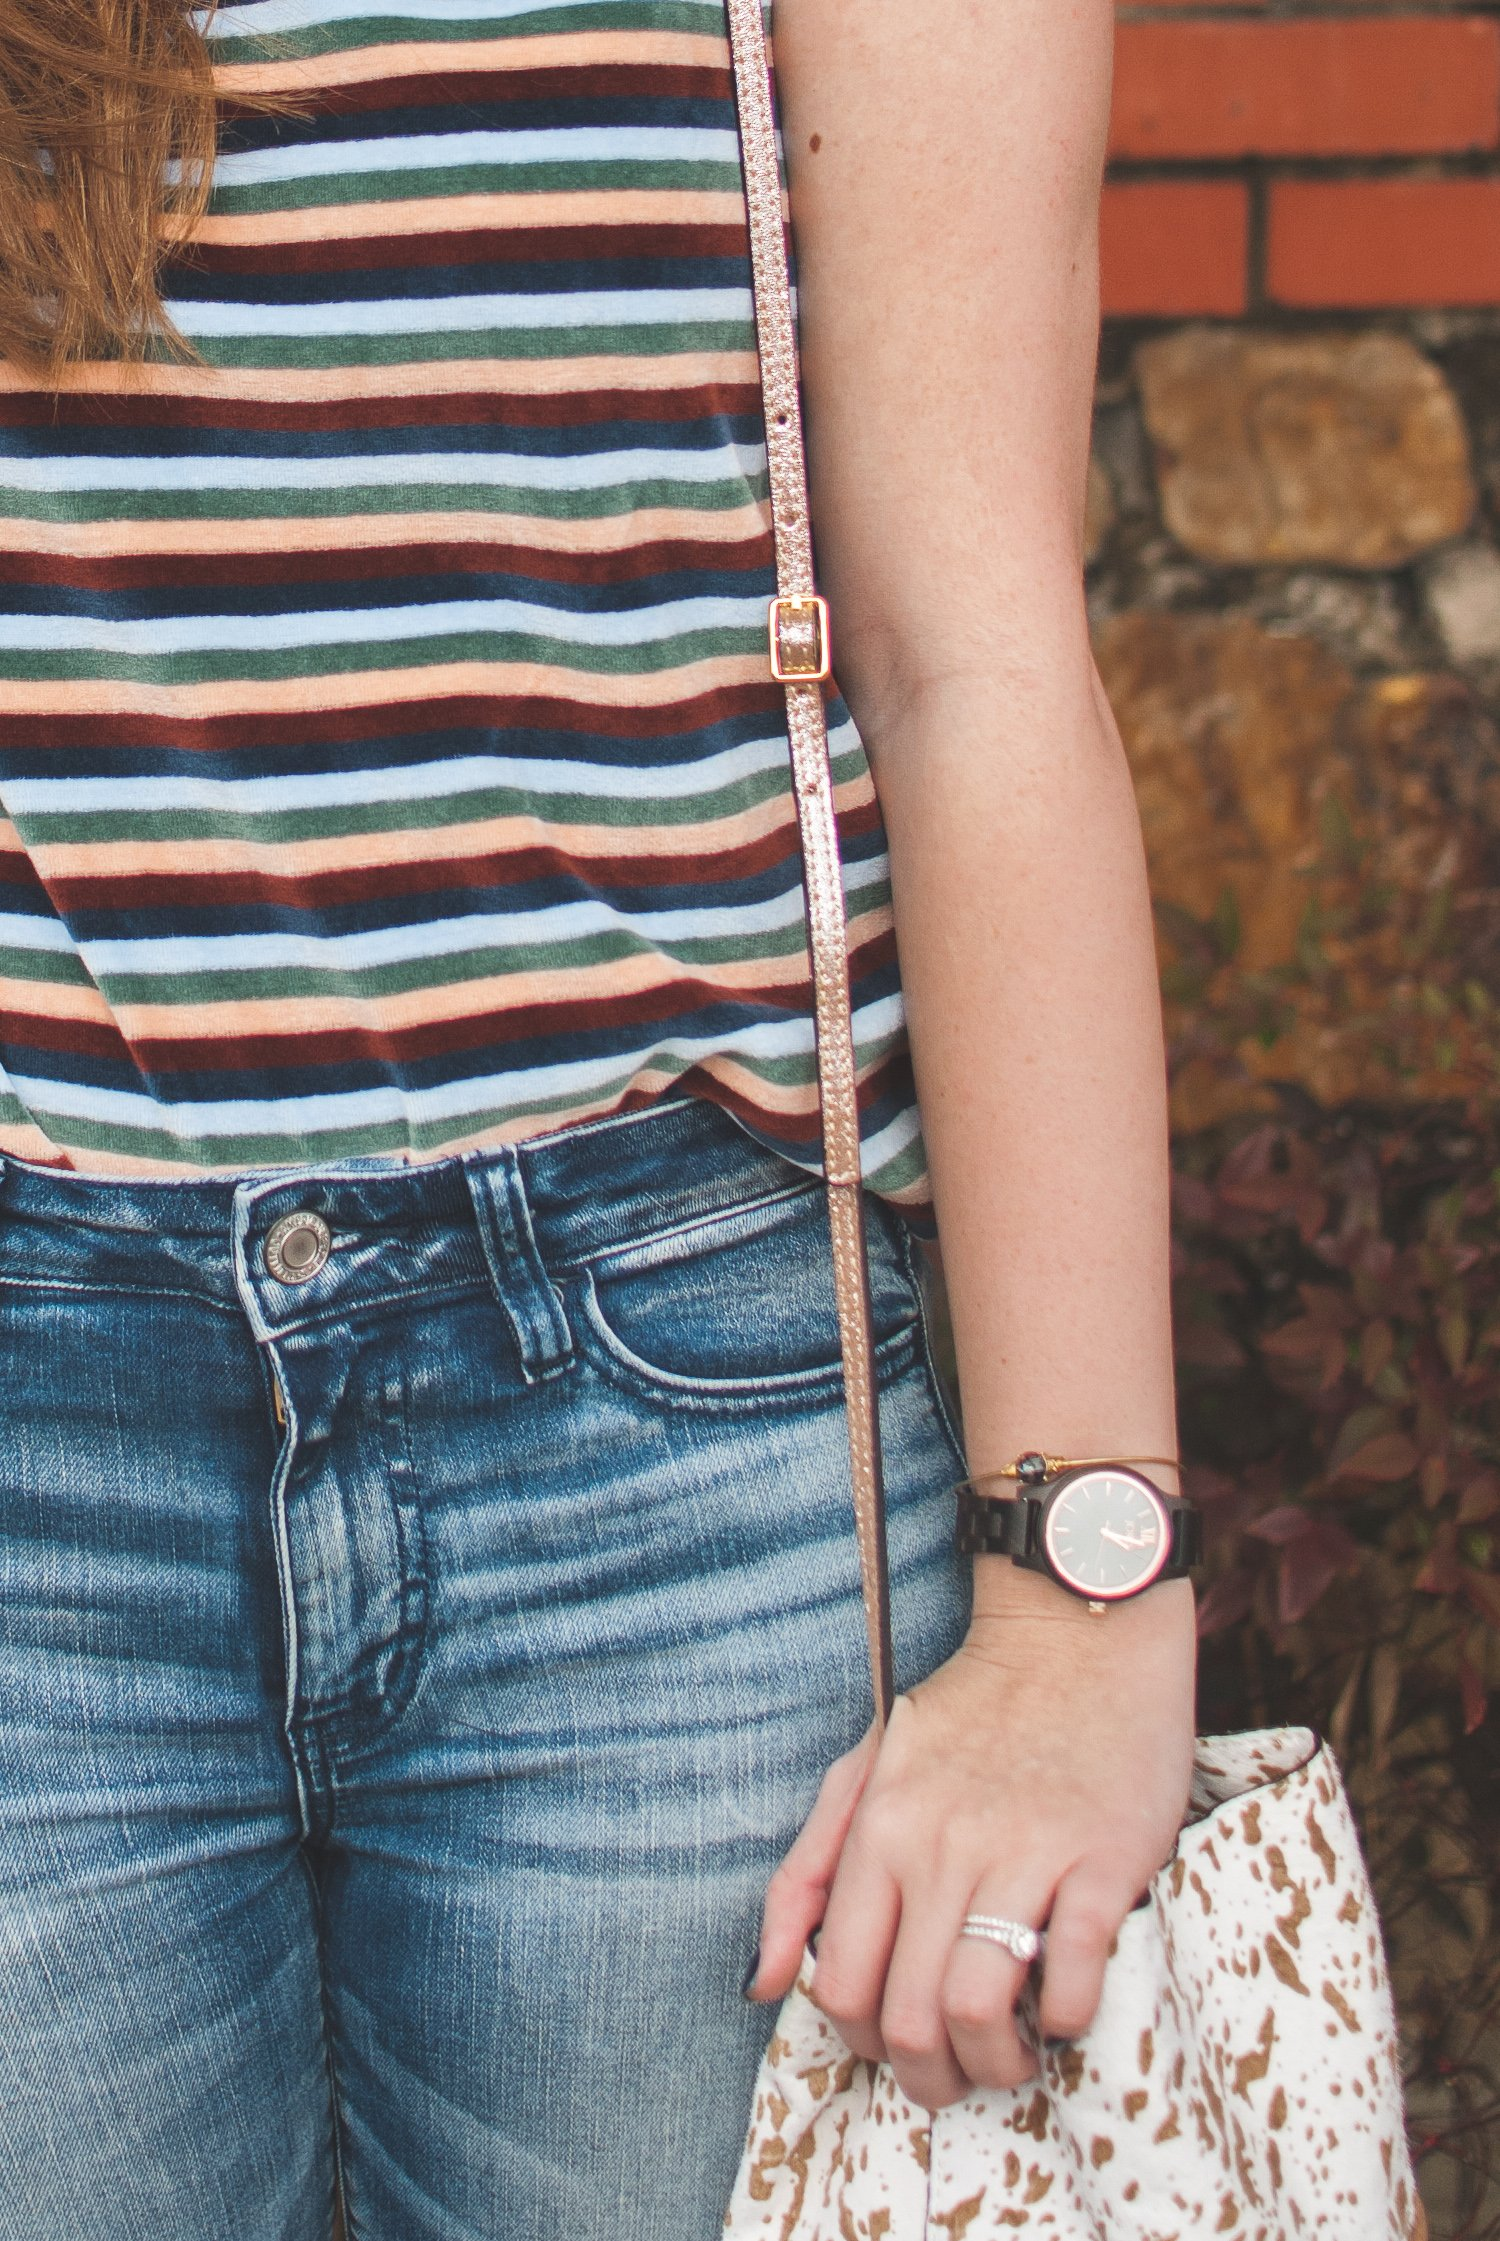 The Must Have Spring Accessory: Wooden Watches